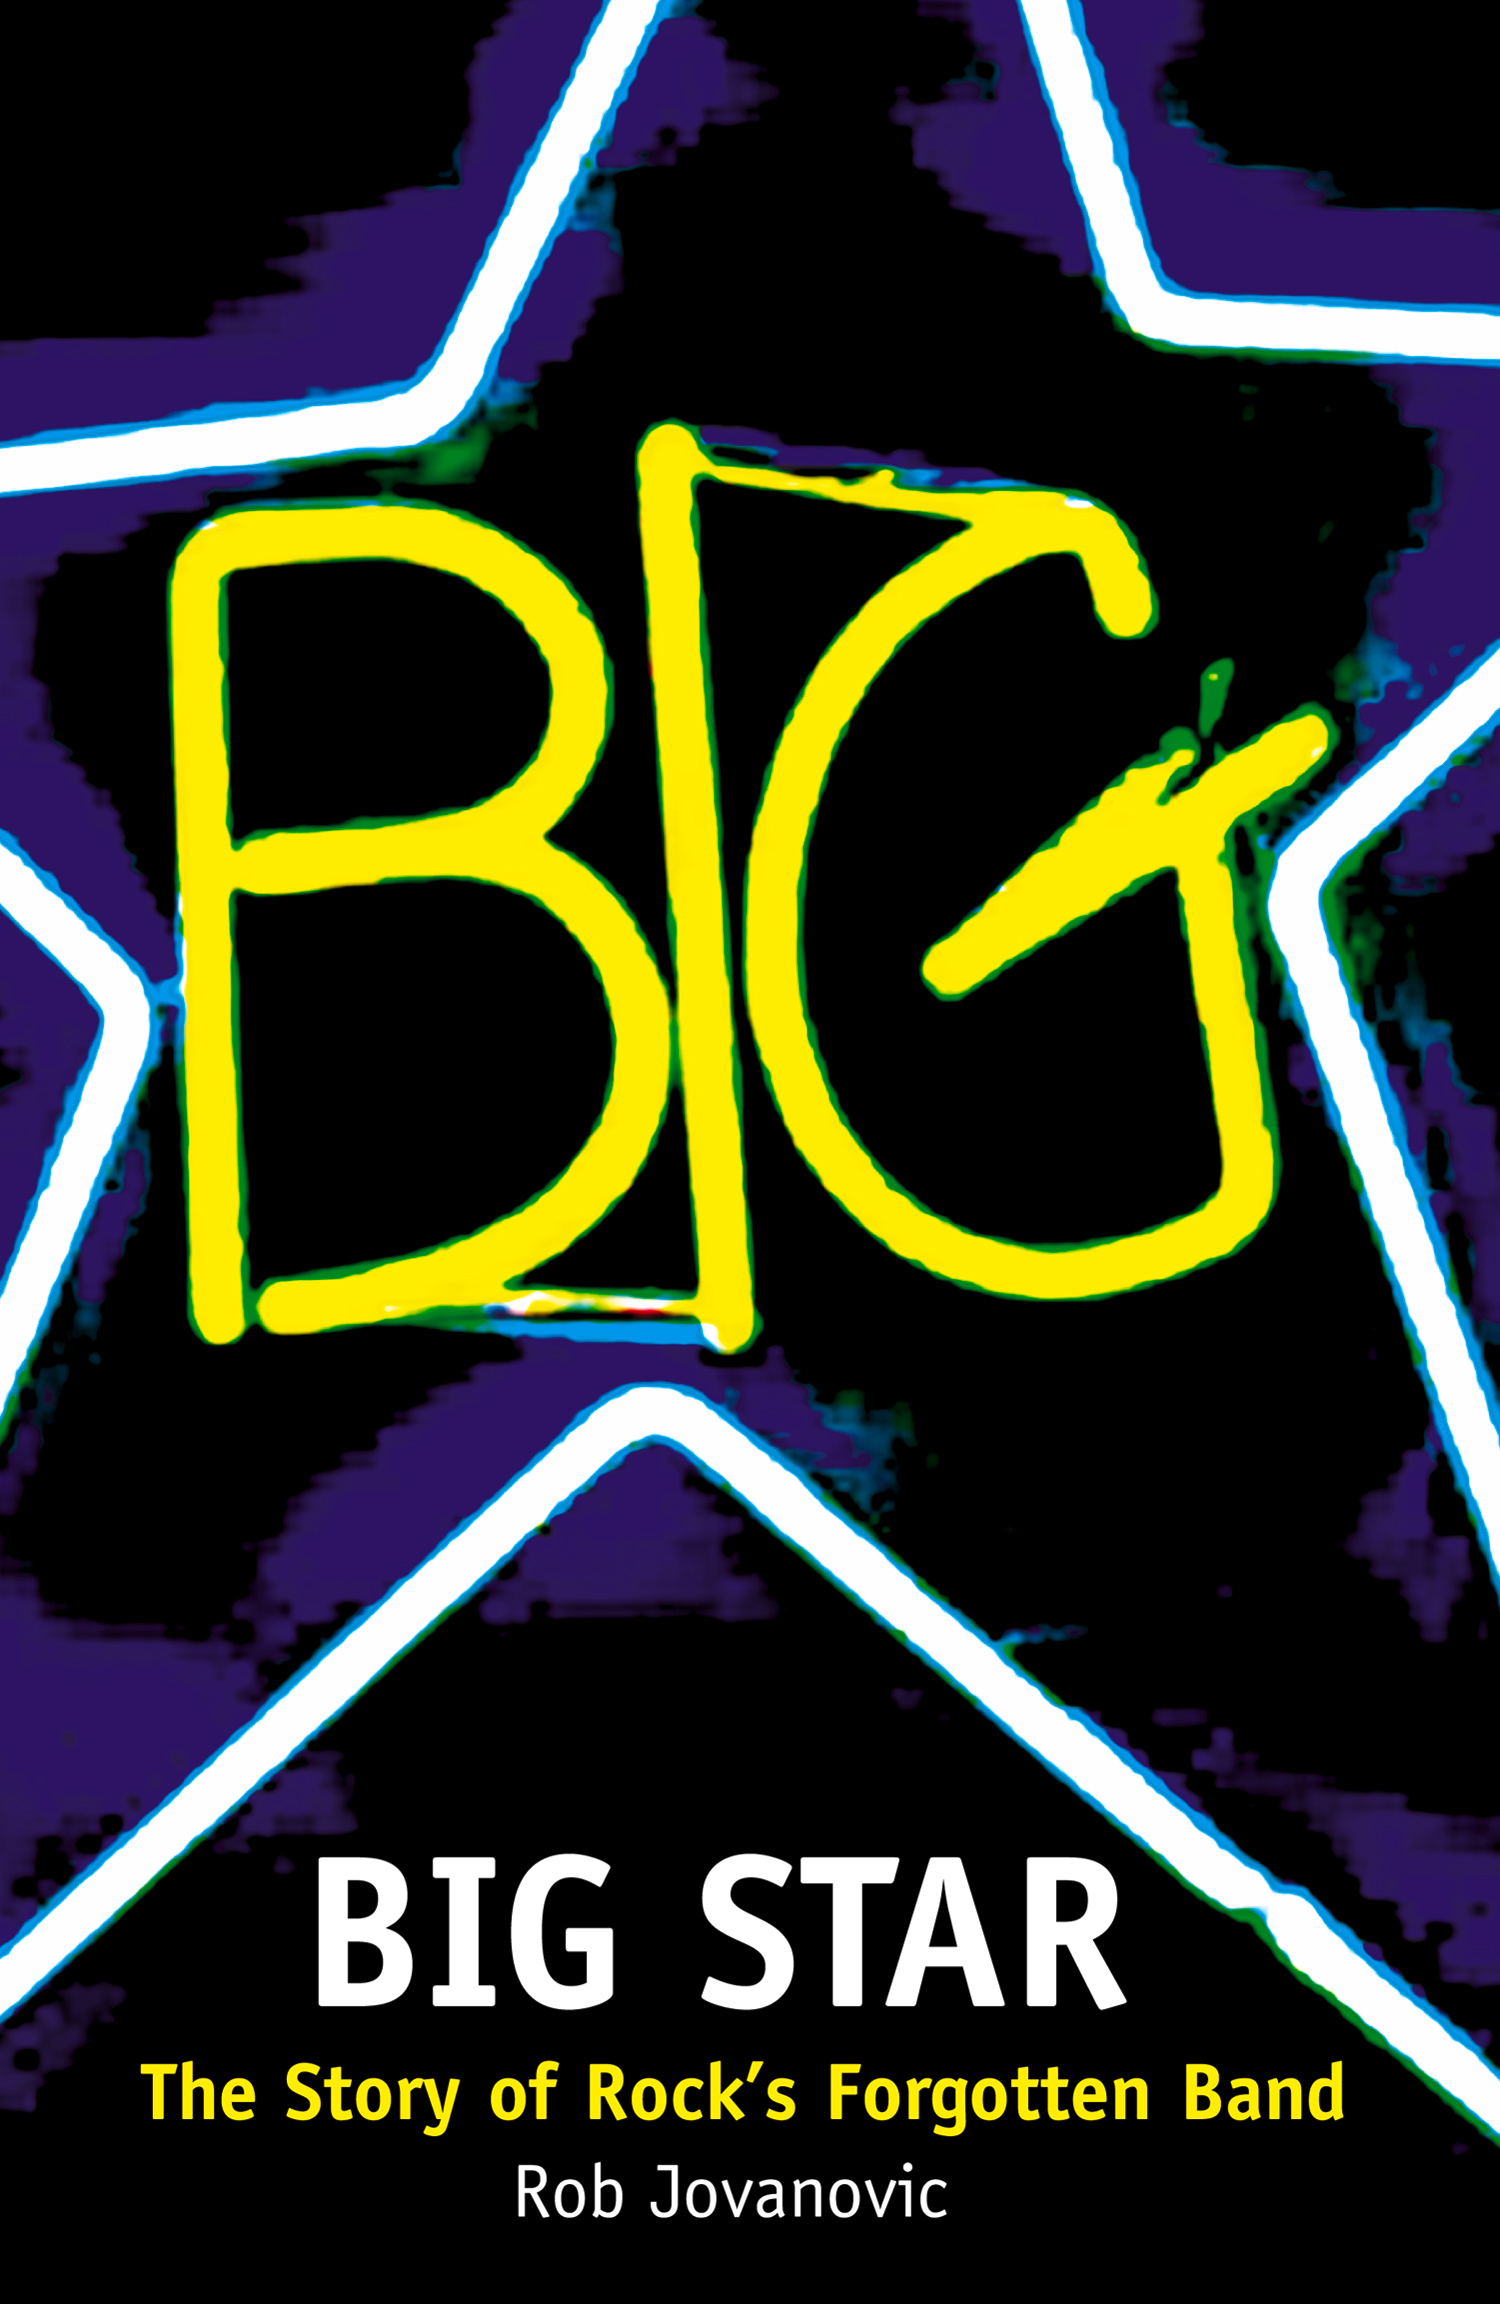 Big Star: The Story of Rock's Forgotten Band By: Rob Jovanovic